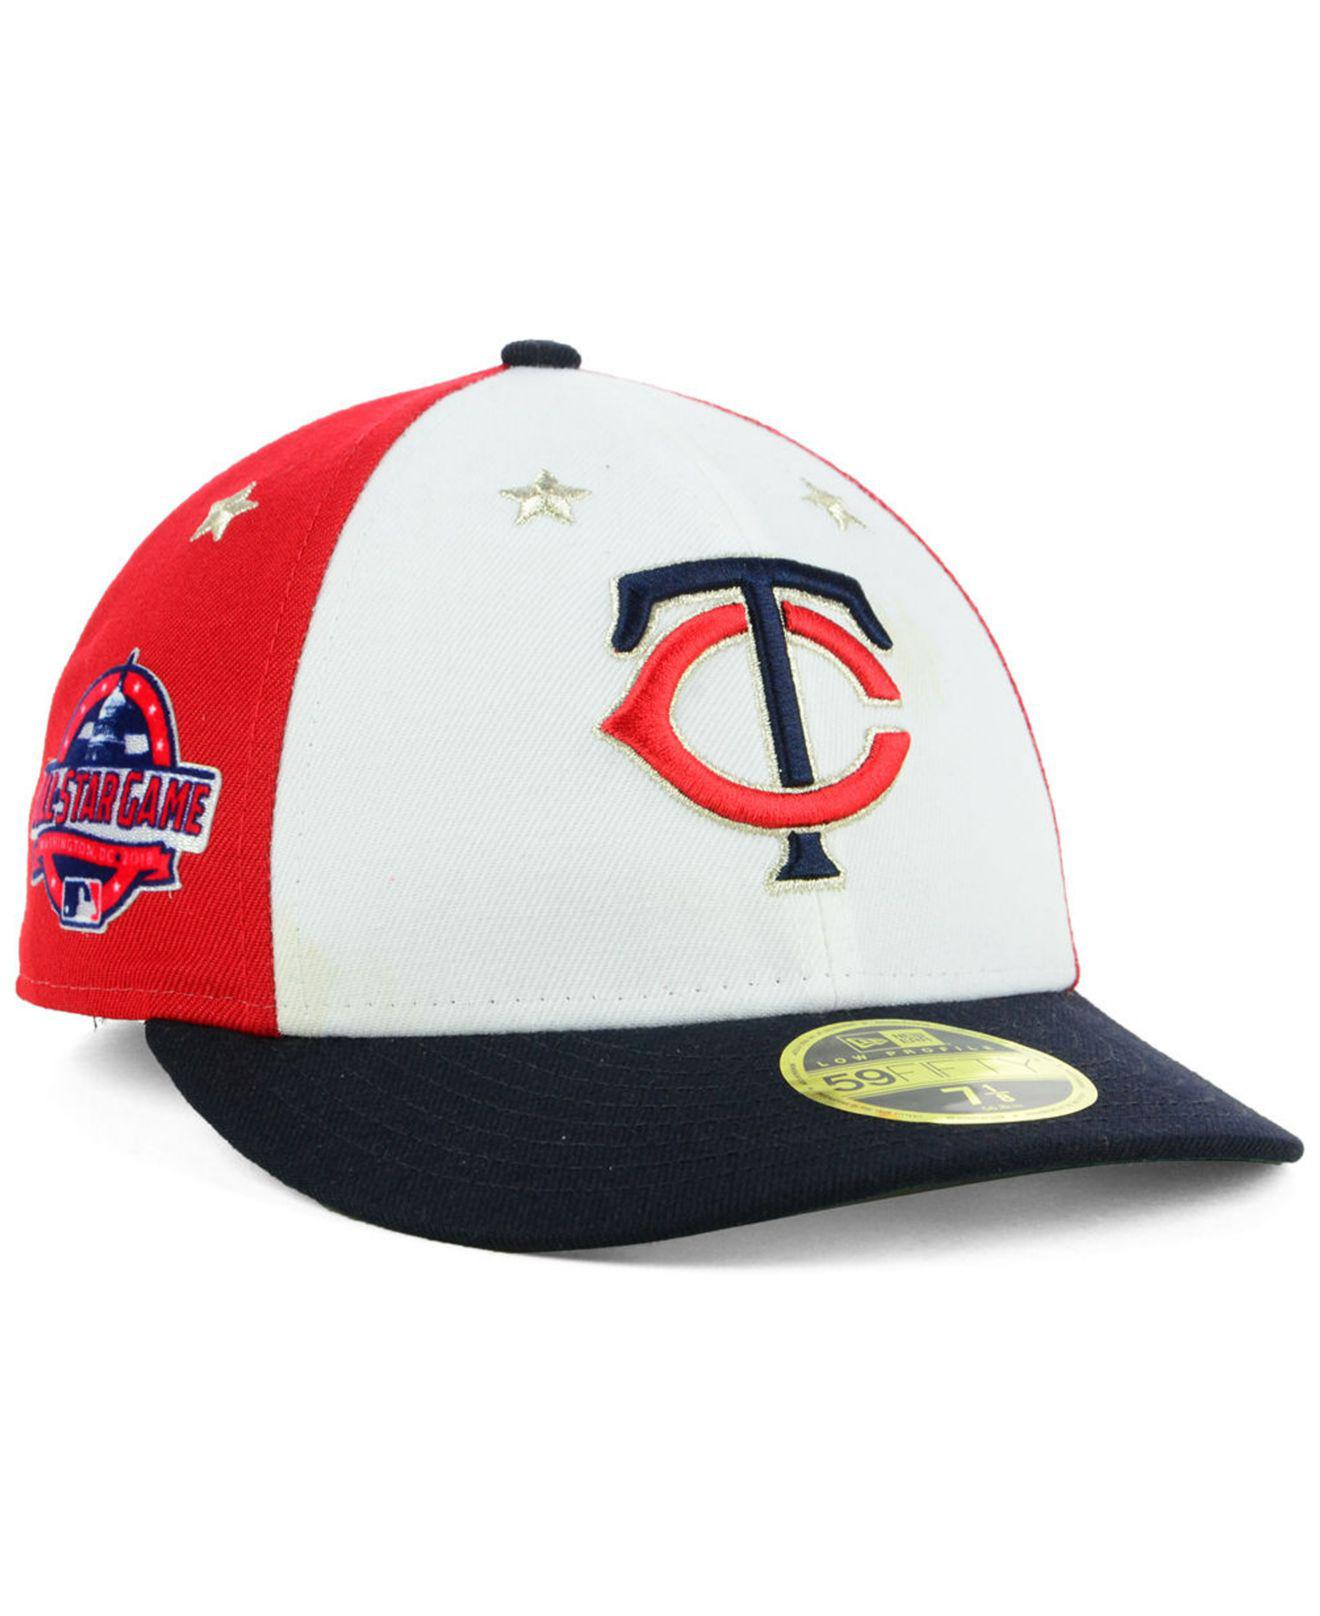 hot sales 7b3b8 0bda9 ... usa ktz. mens minnesota twins all star game patch low profile 59fifty  fitted cap 2018